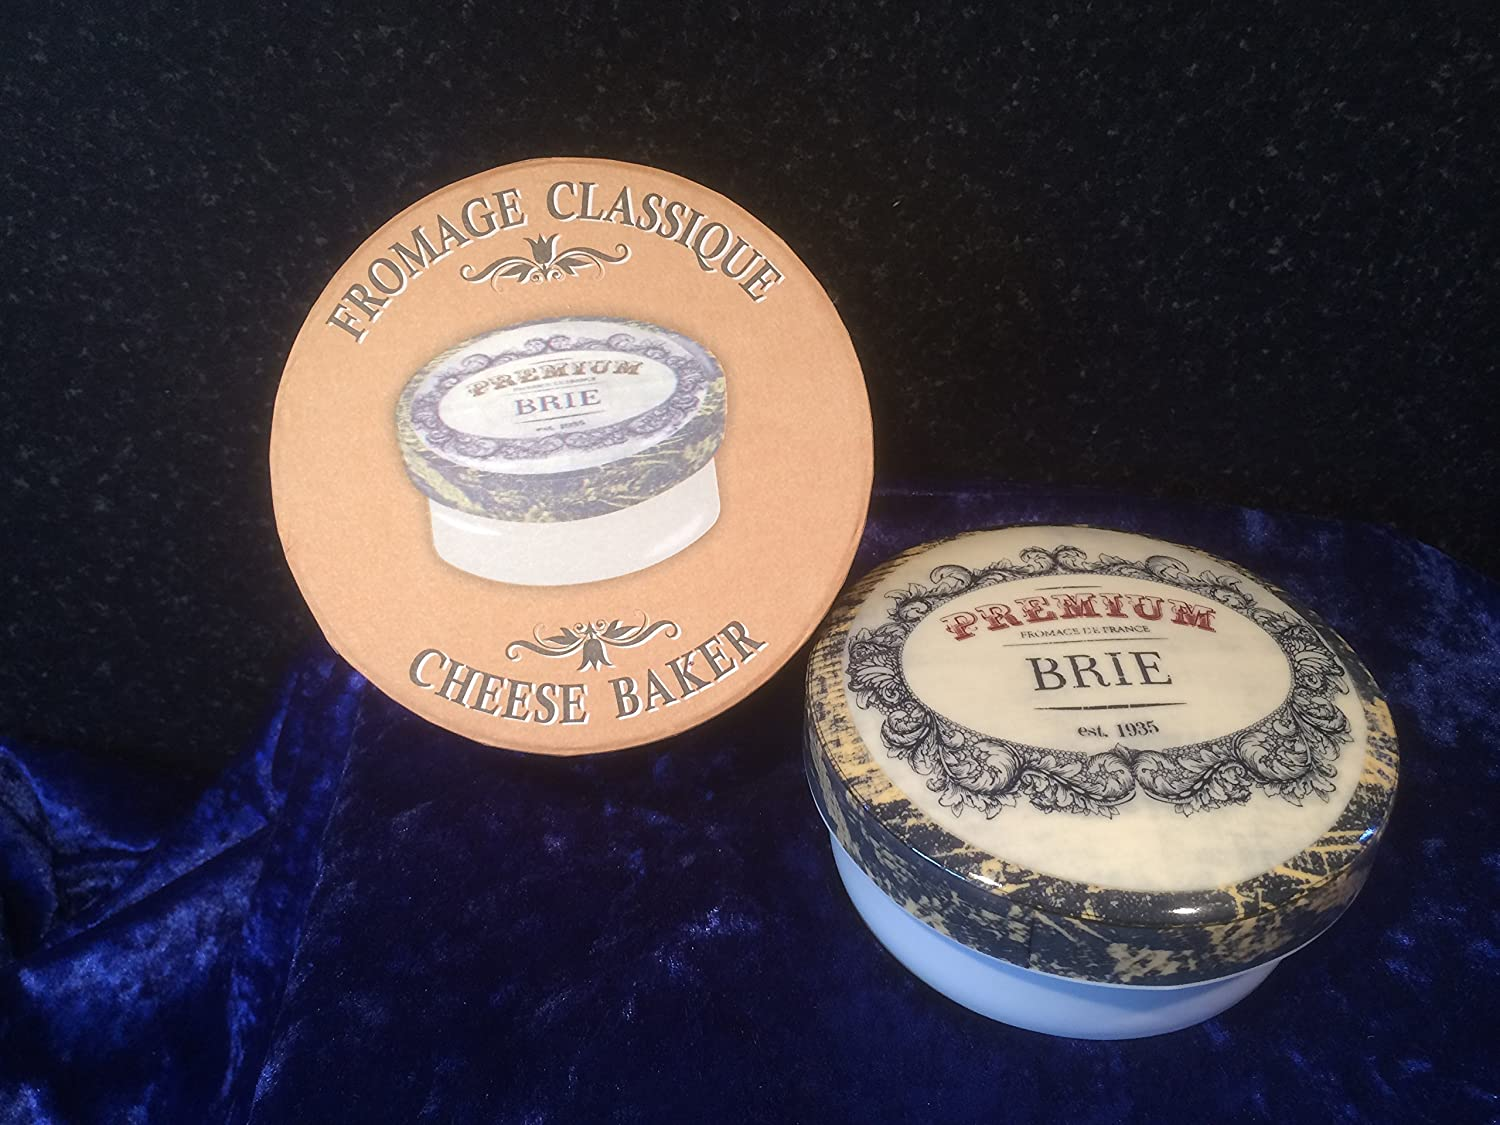 CHEESE BAKER FROMAGE CLASSIQUE BRIE